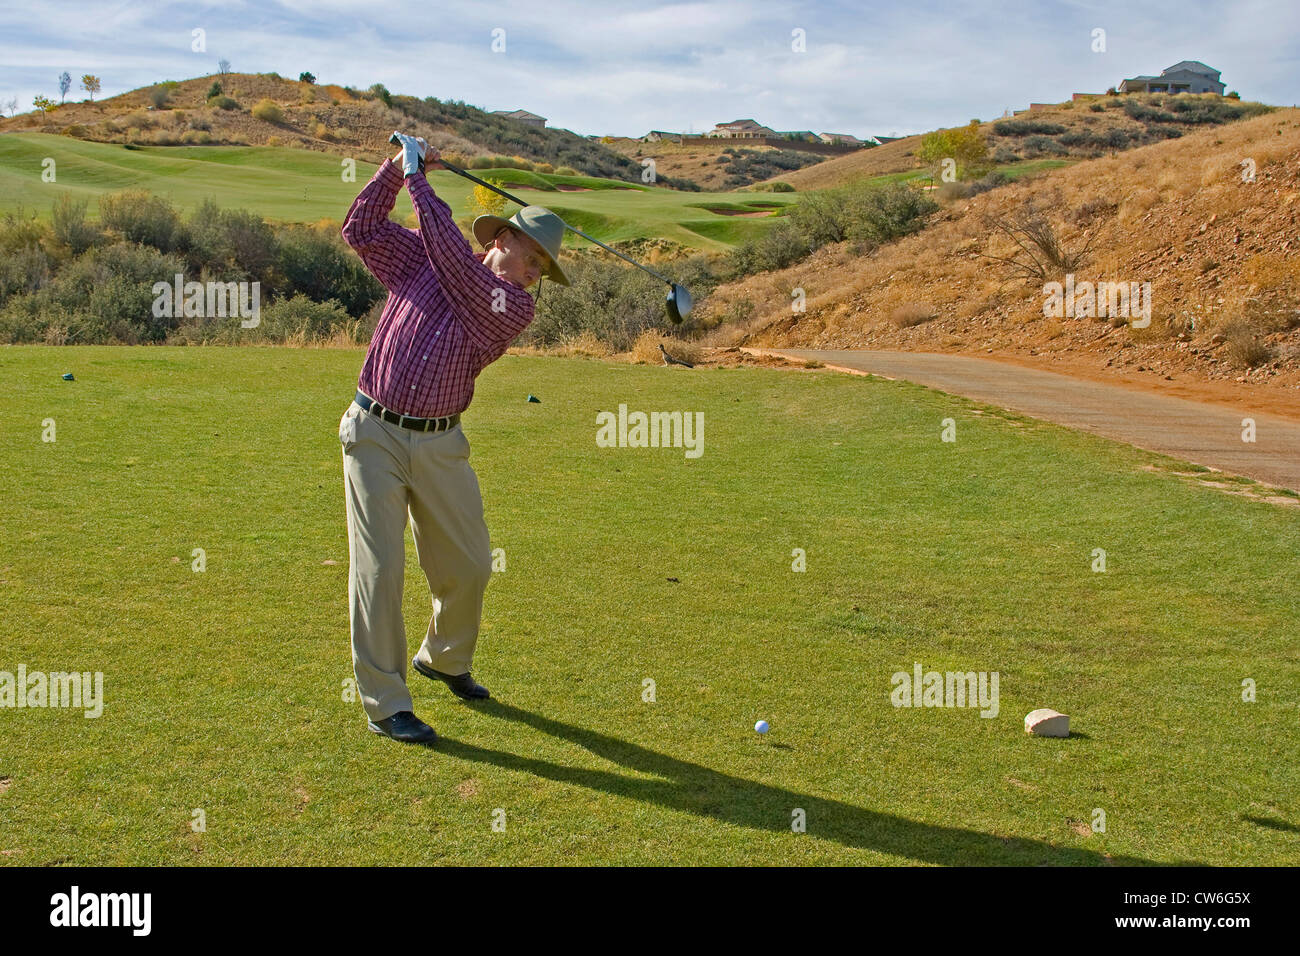 golfer at golf course Prescott in an altitude of 1600 metres, USA, Arizona, Prescott - Stock Image